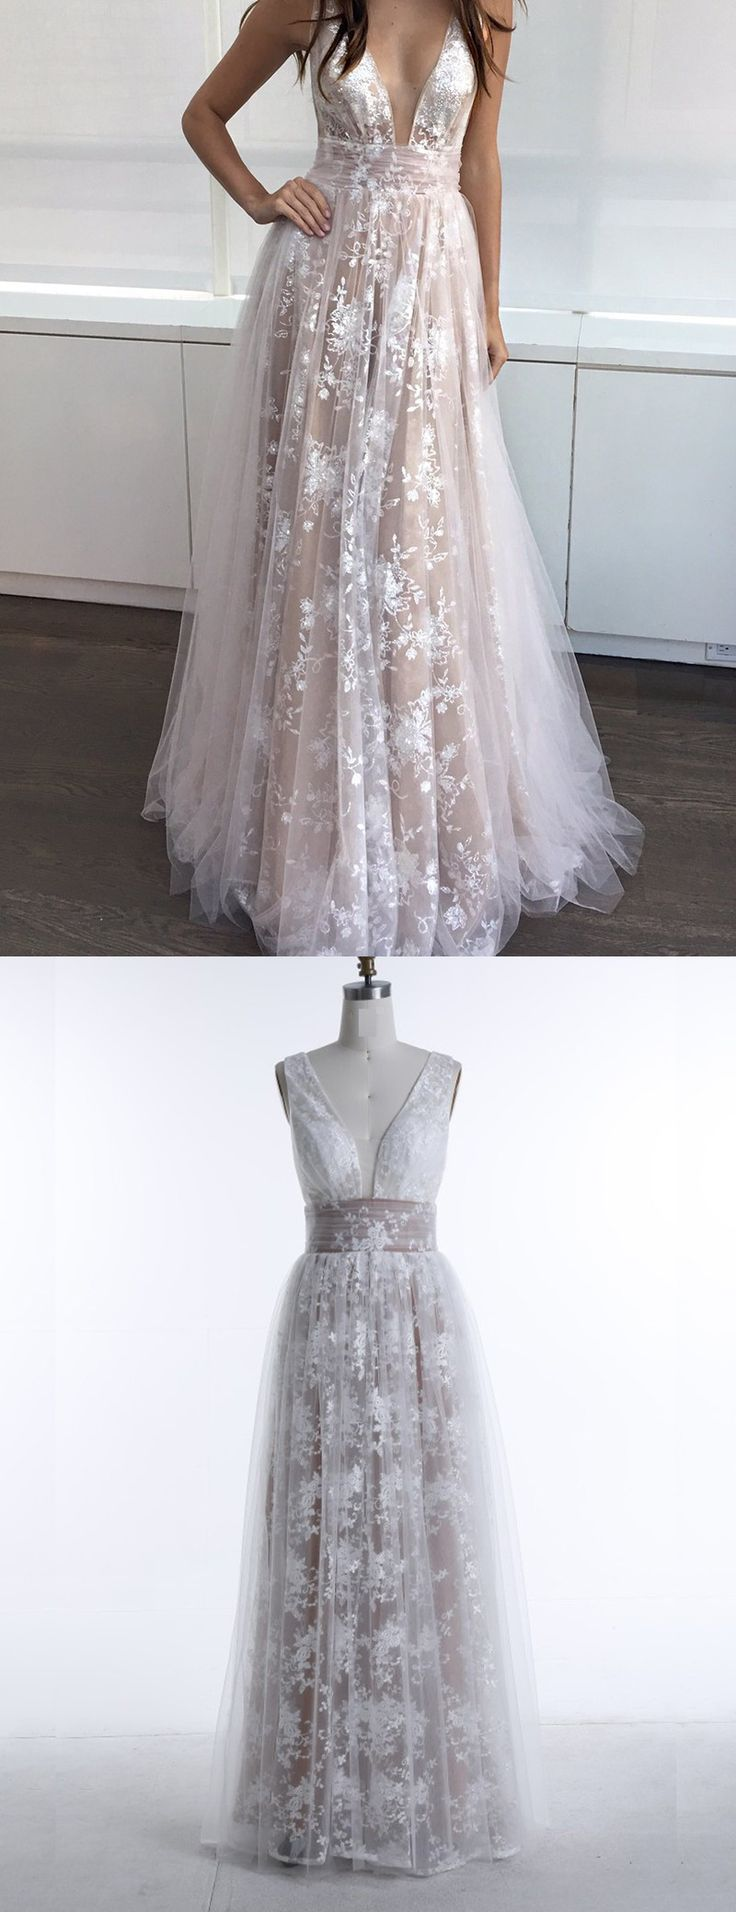 Deep V-Neck Prom Dresses,Sleeveless Prom Dress,Appliques Prom Dress,Champagne Prom Gowns, Fashion Prom Dresses,Lace Prom Dress,Sexy Prom Gowns,Floor Length Prom Dresses